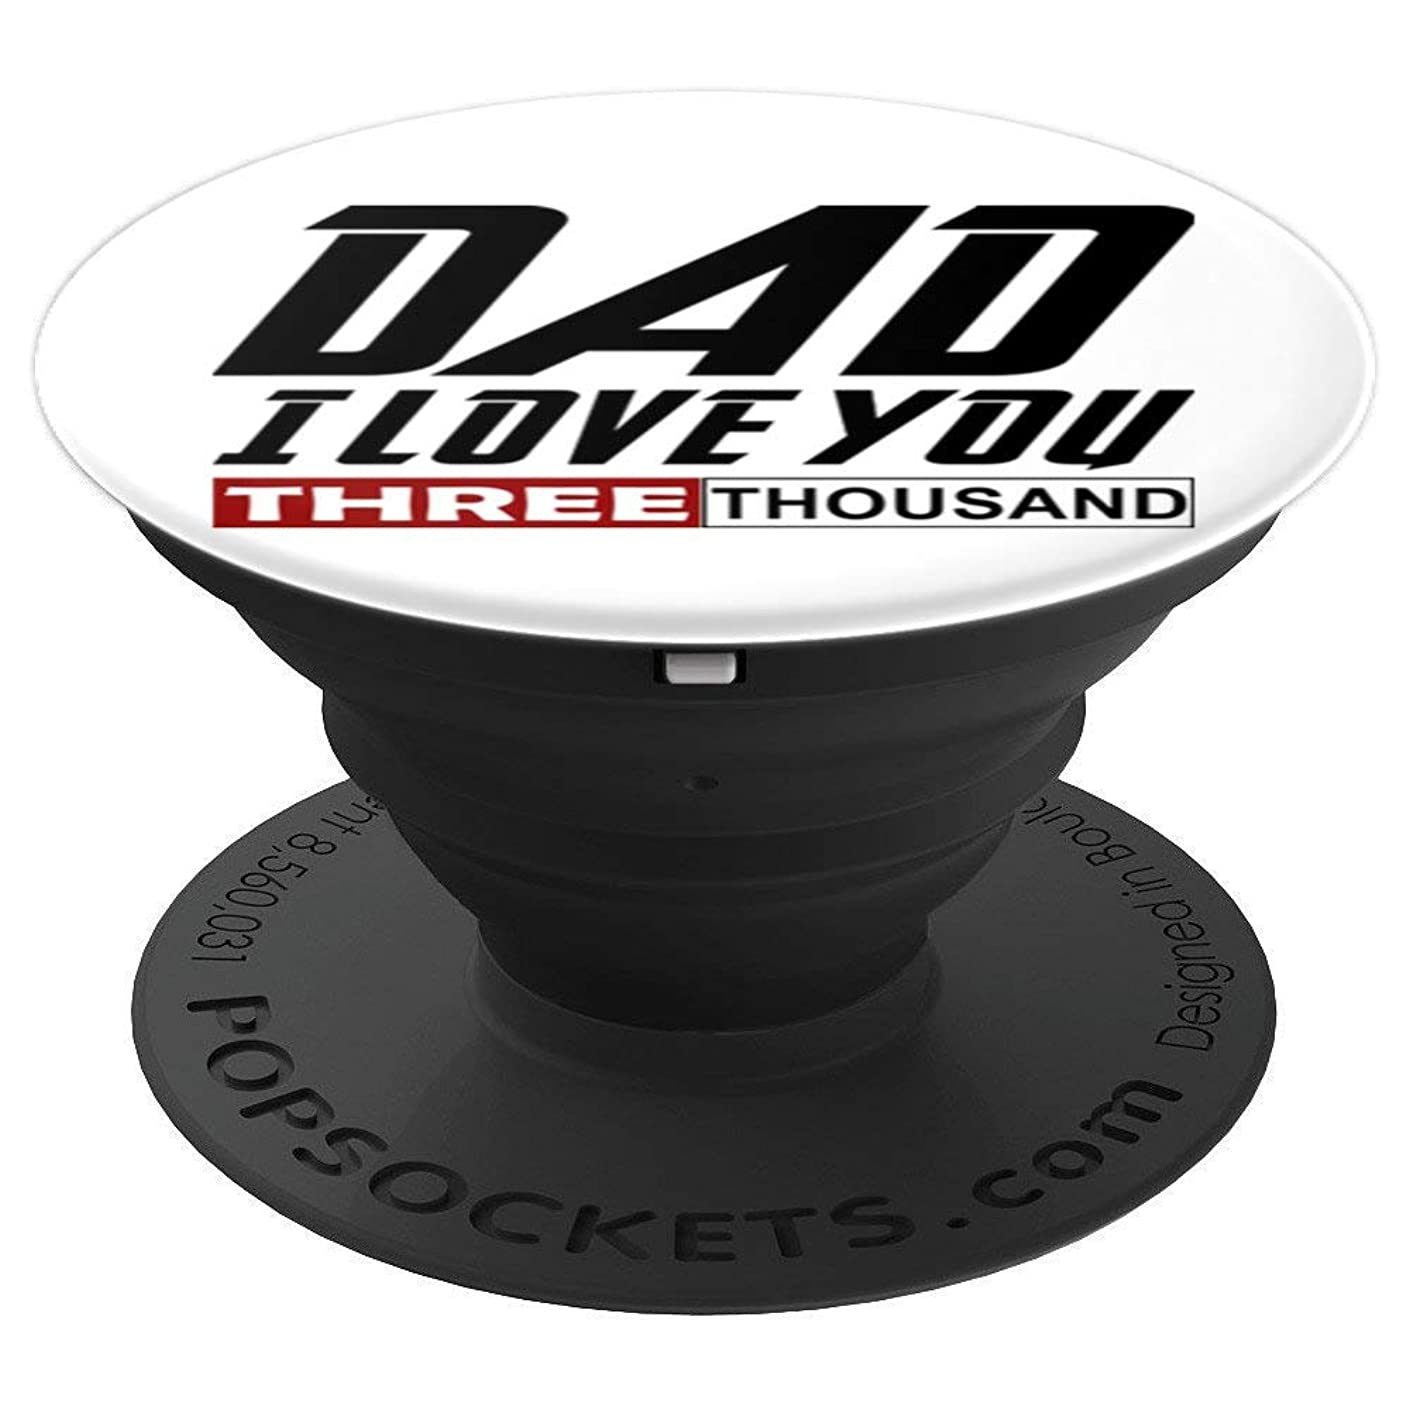 I Love You Dad 3000 Tshirt Papa Three Tsnd Father's Day Gift - PopSockets Grip and Stand for Phones and Tablets